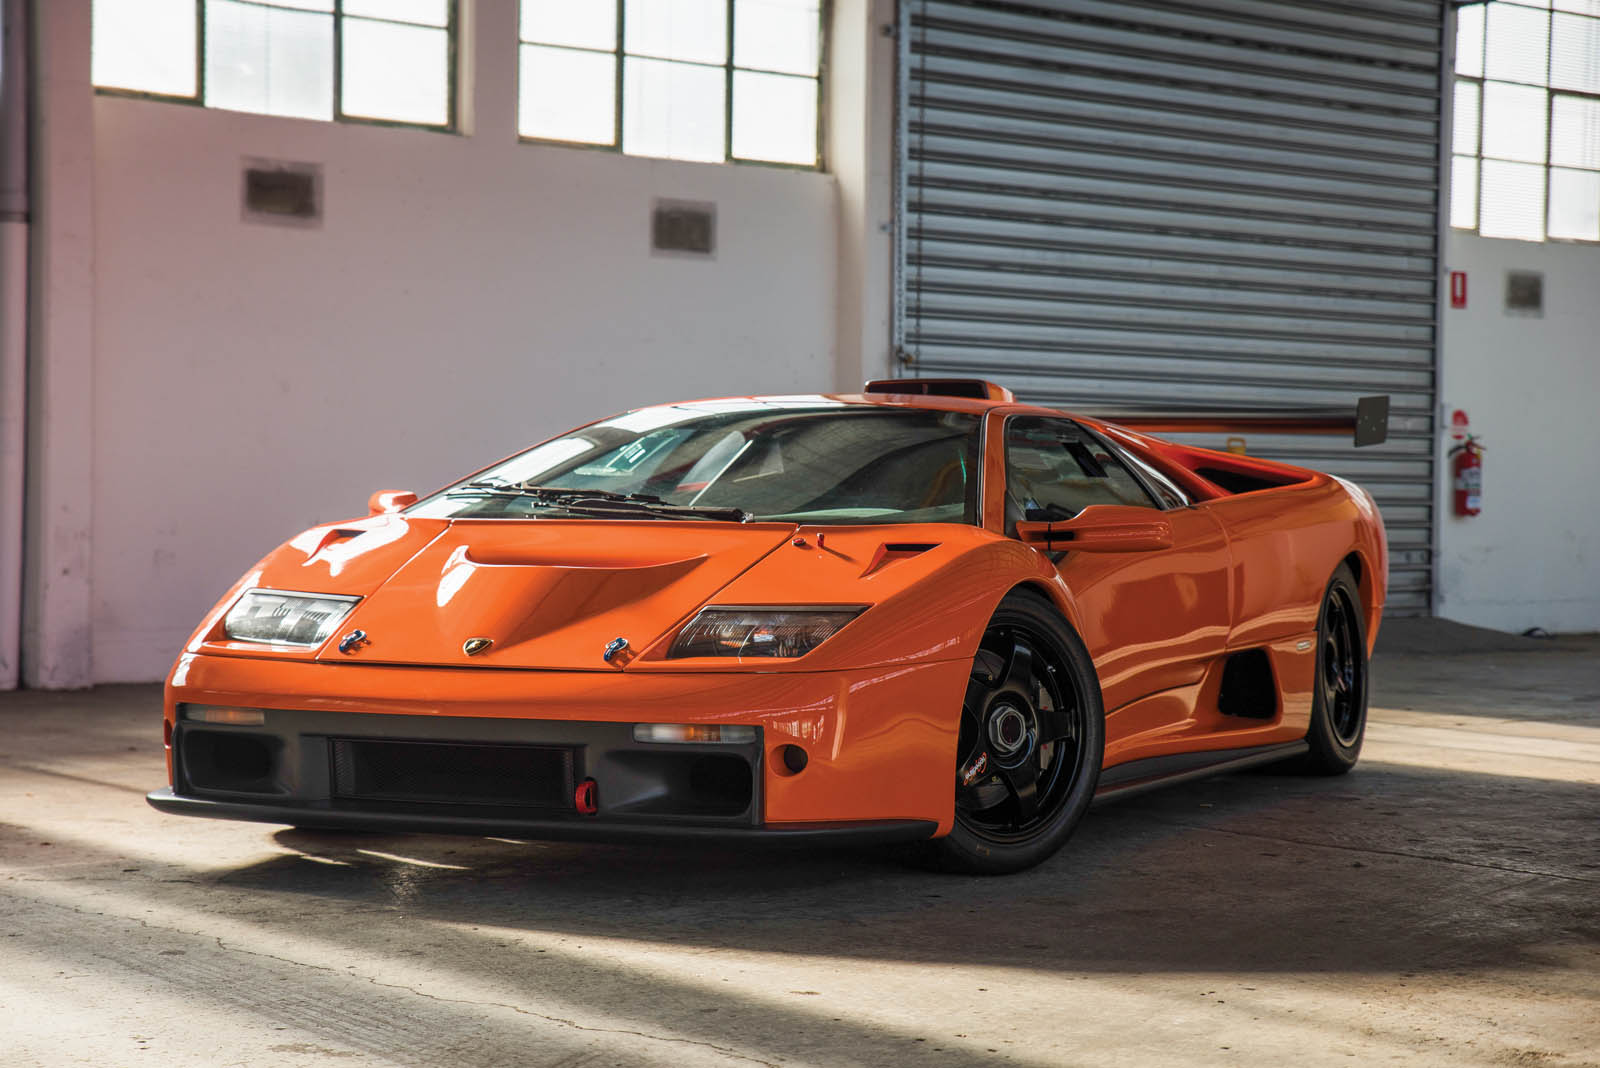 This Lamborghini Diablo Gtr Is Just Begging For A Day At The Track Carscoops